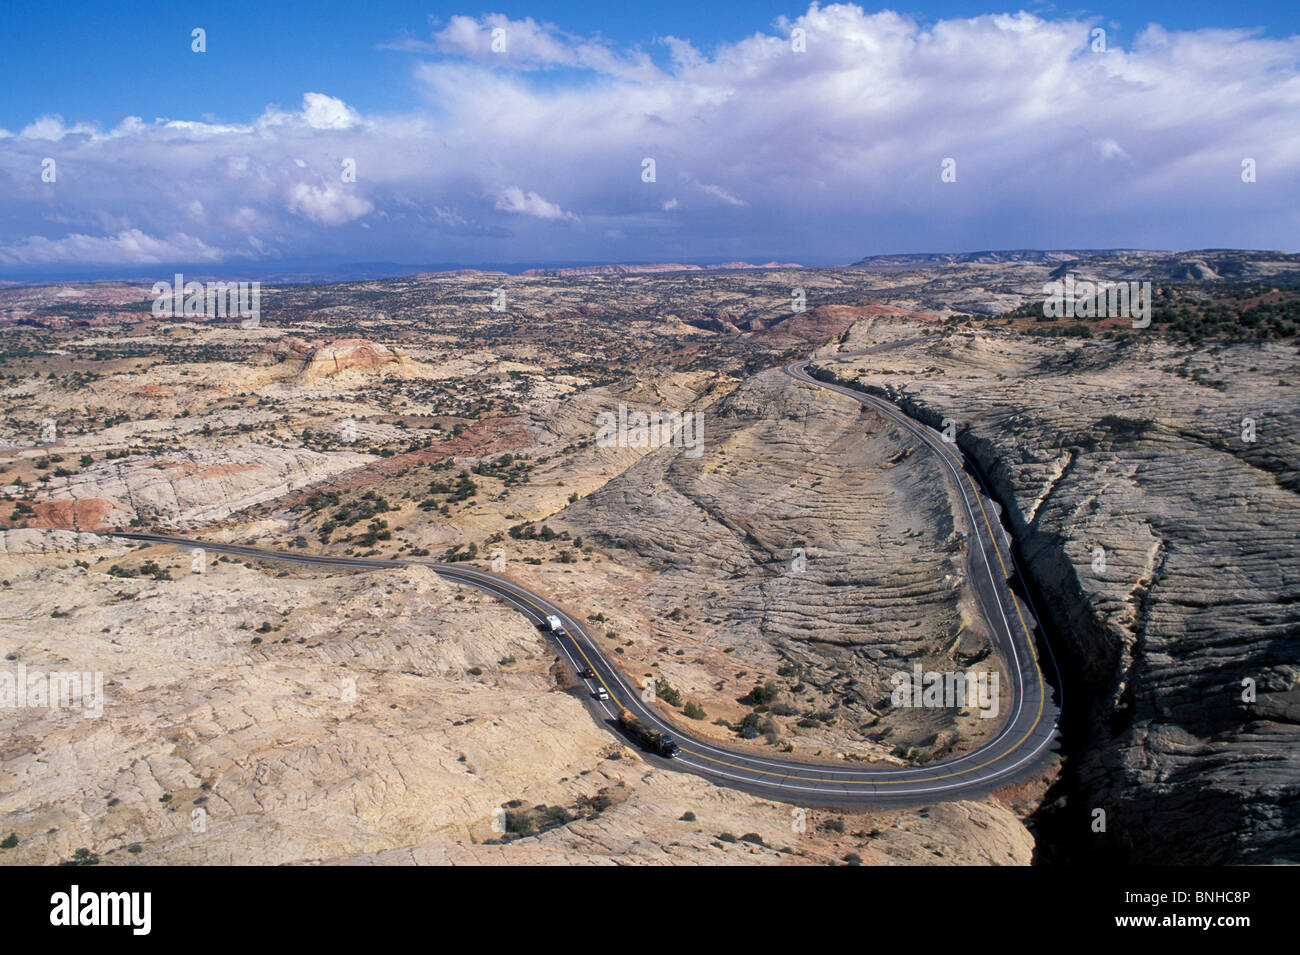 Usa Escalante Utah Highway 12 Near Escalante Grand Staircase Escalante National Monument Road Landscape Scenery - Stock Image